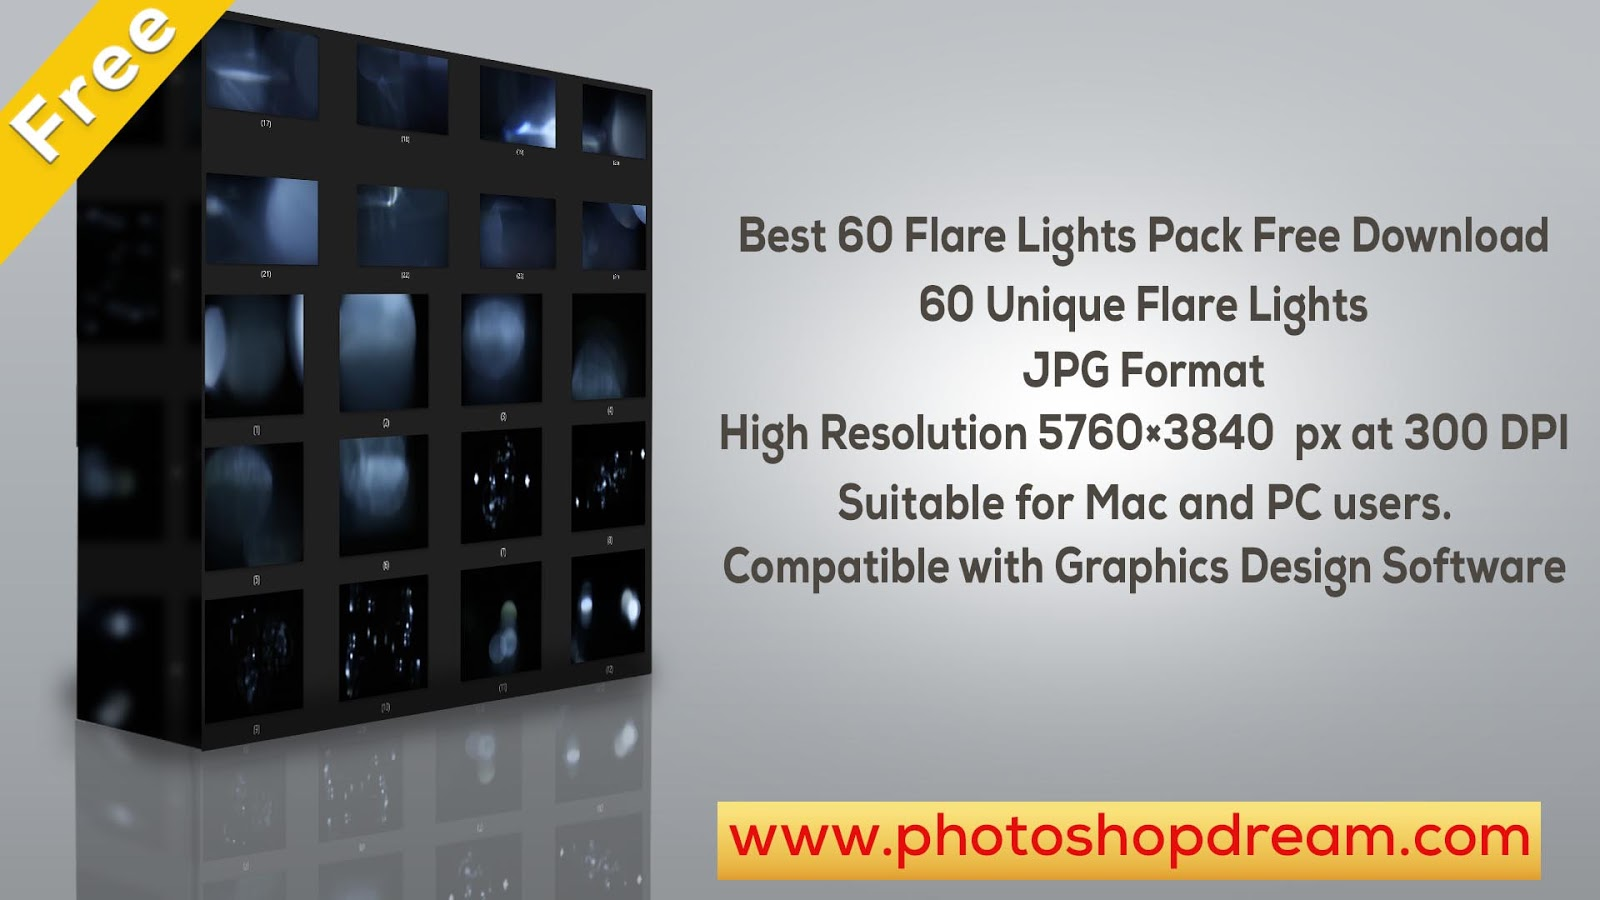 Free Photoshop Overlays For Photographers - Best 60 Flare Lights Pack Free Download